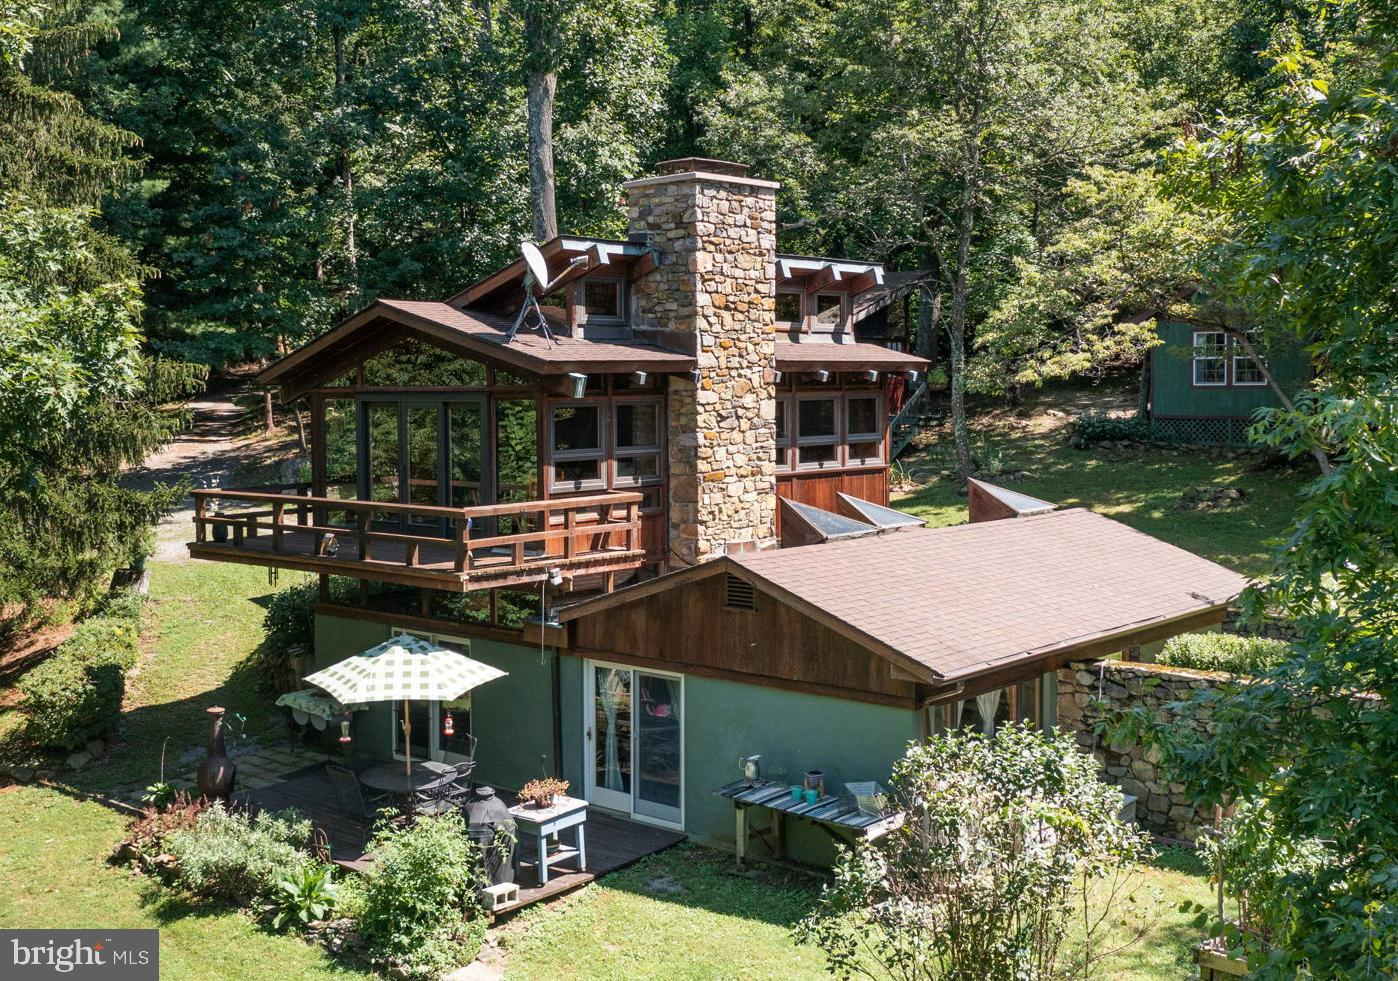 This outstanding custom contemporary mountain home with two bedrooms, two baths, and a guest cottage